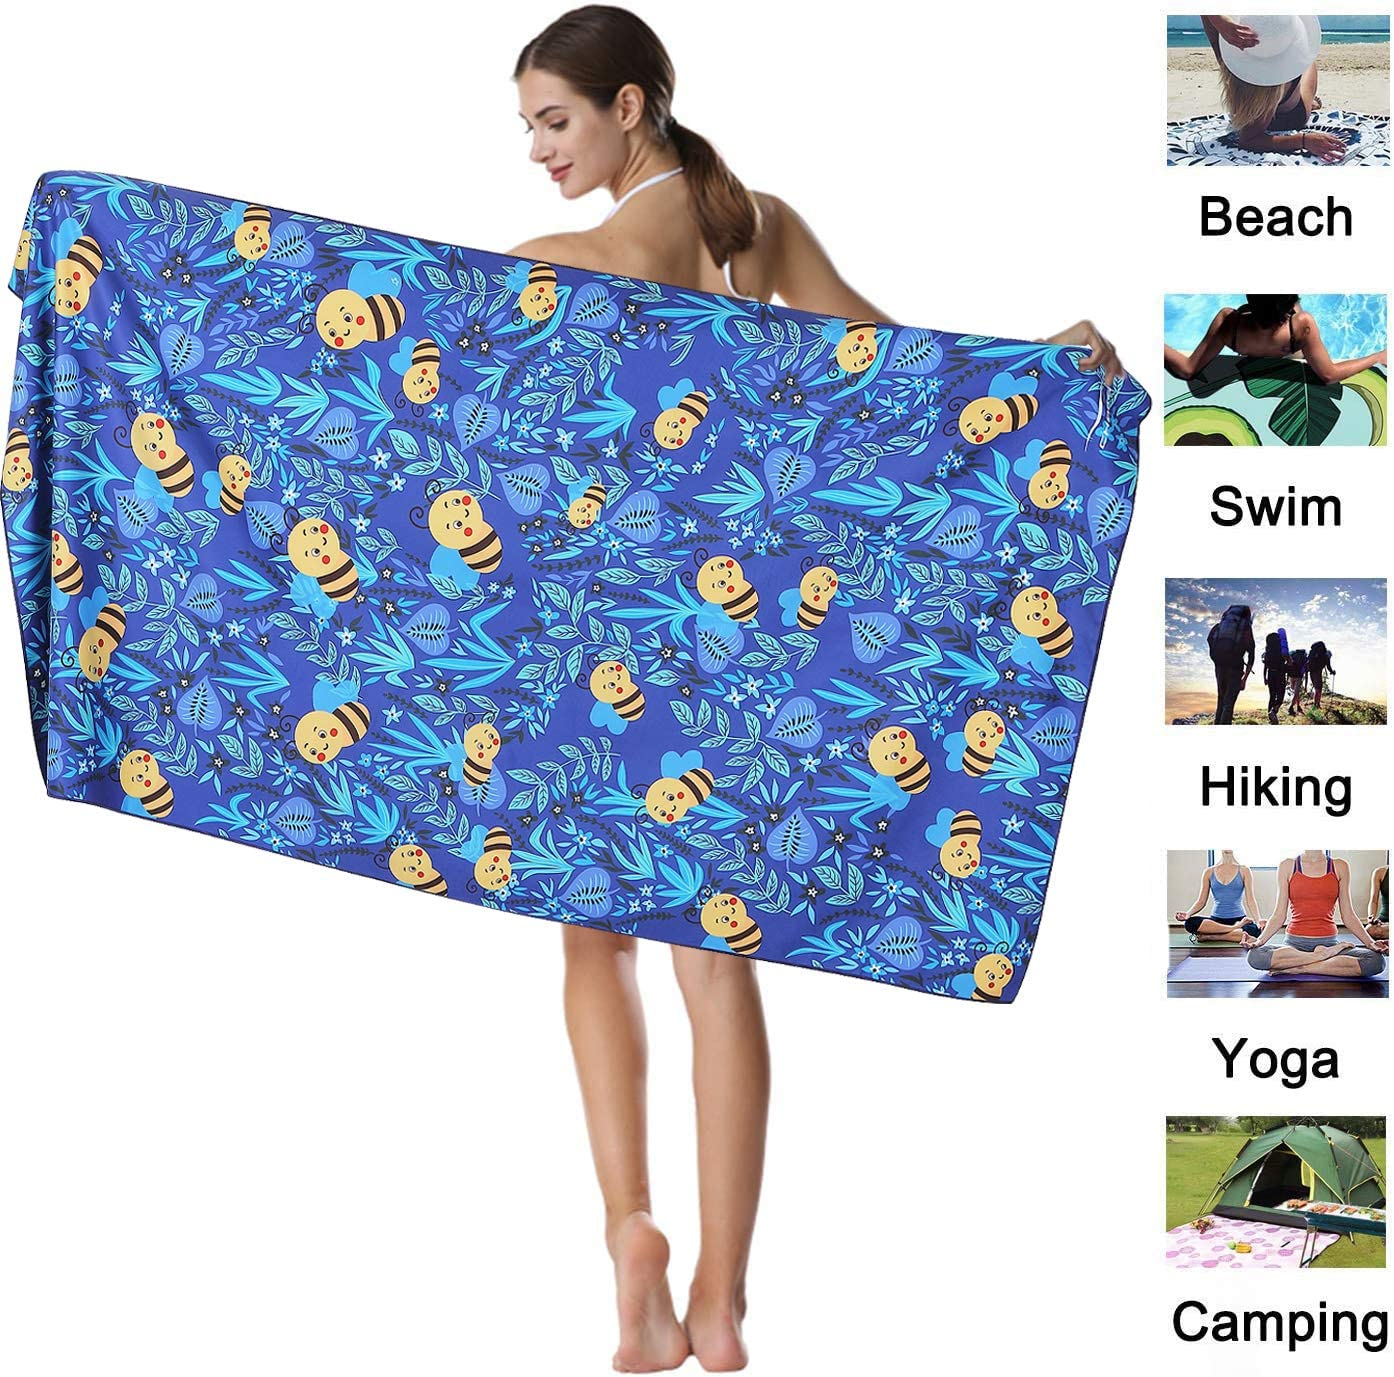 Yoga Camping Sand Free Towel for Kids Travel Pool Absorbent Sport Towel Outdoor and Picnic CHARS Microfiber Quick Drying Towel with a Carrying Bag Adults 15 x 30 inches Gym